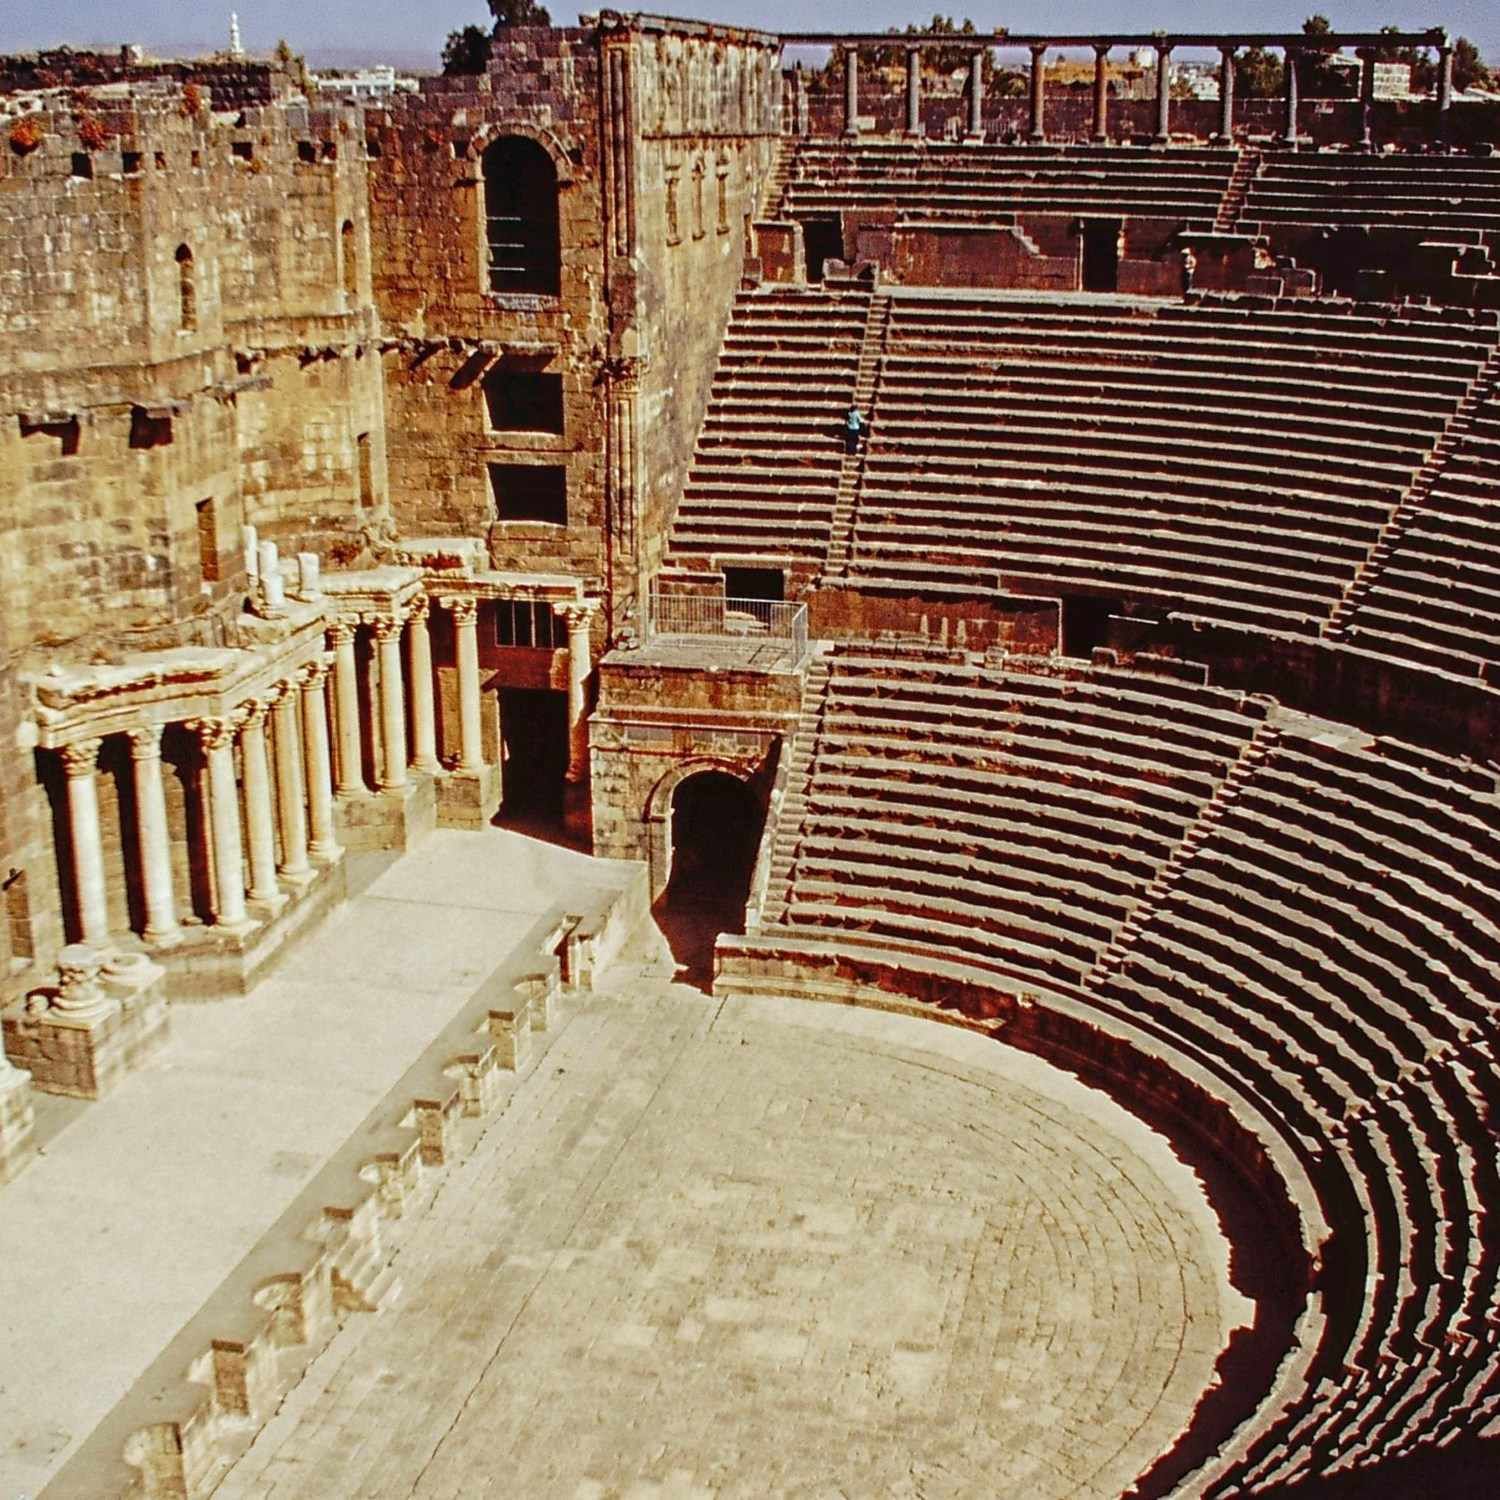 Looking down at the stage of a Roman theatre